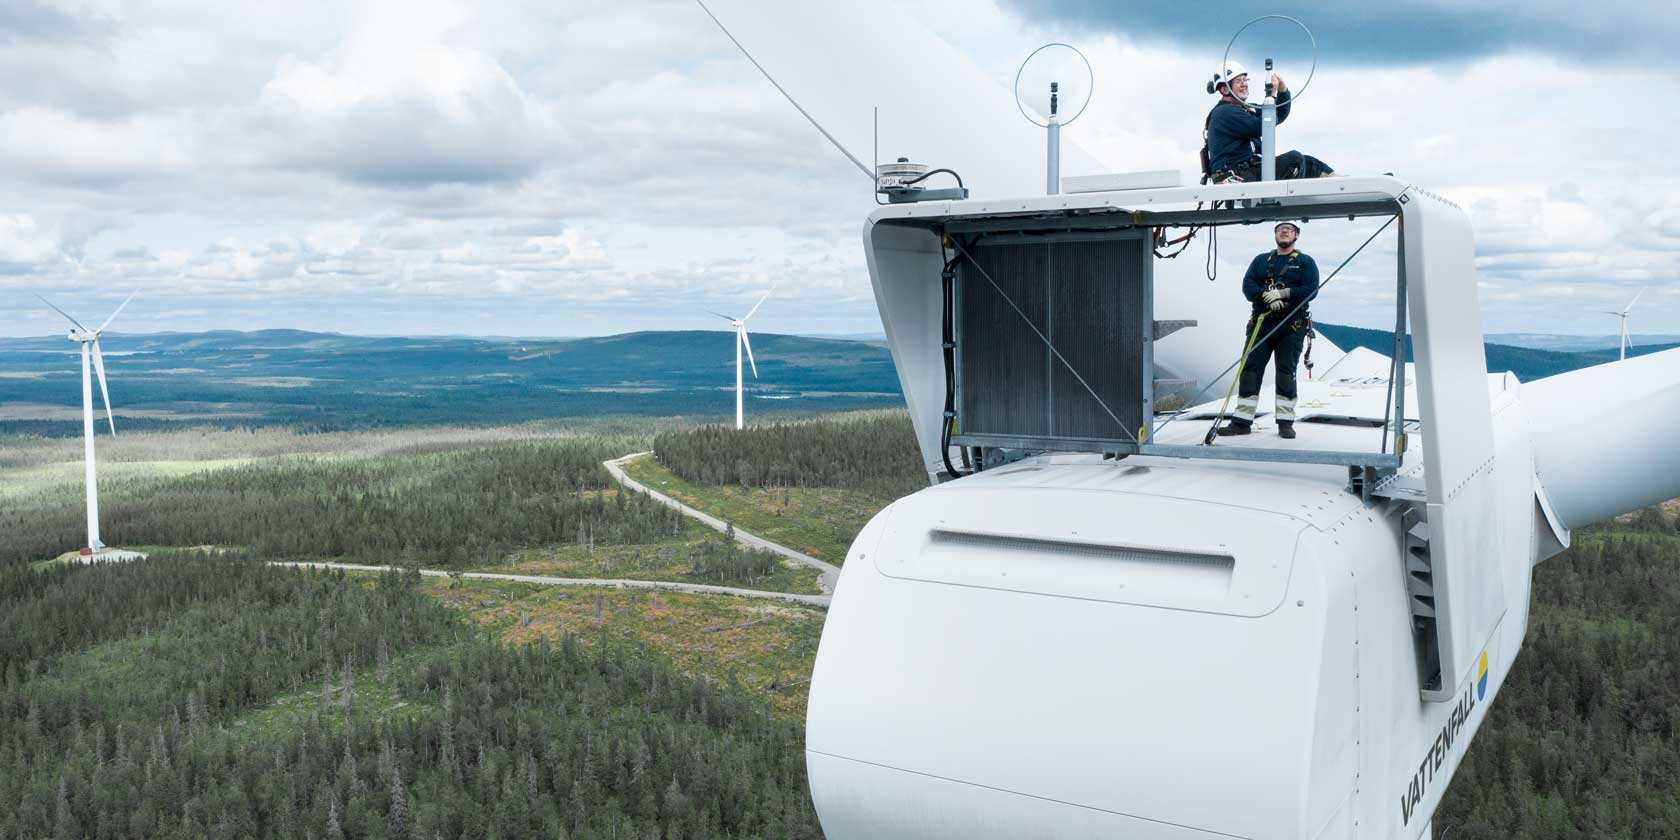 Wind employees at the Stor-Rotliden wind farm in Sweden